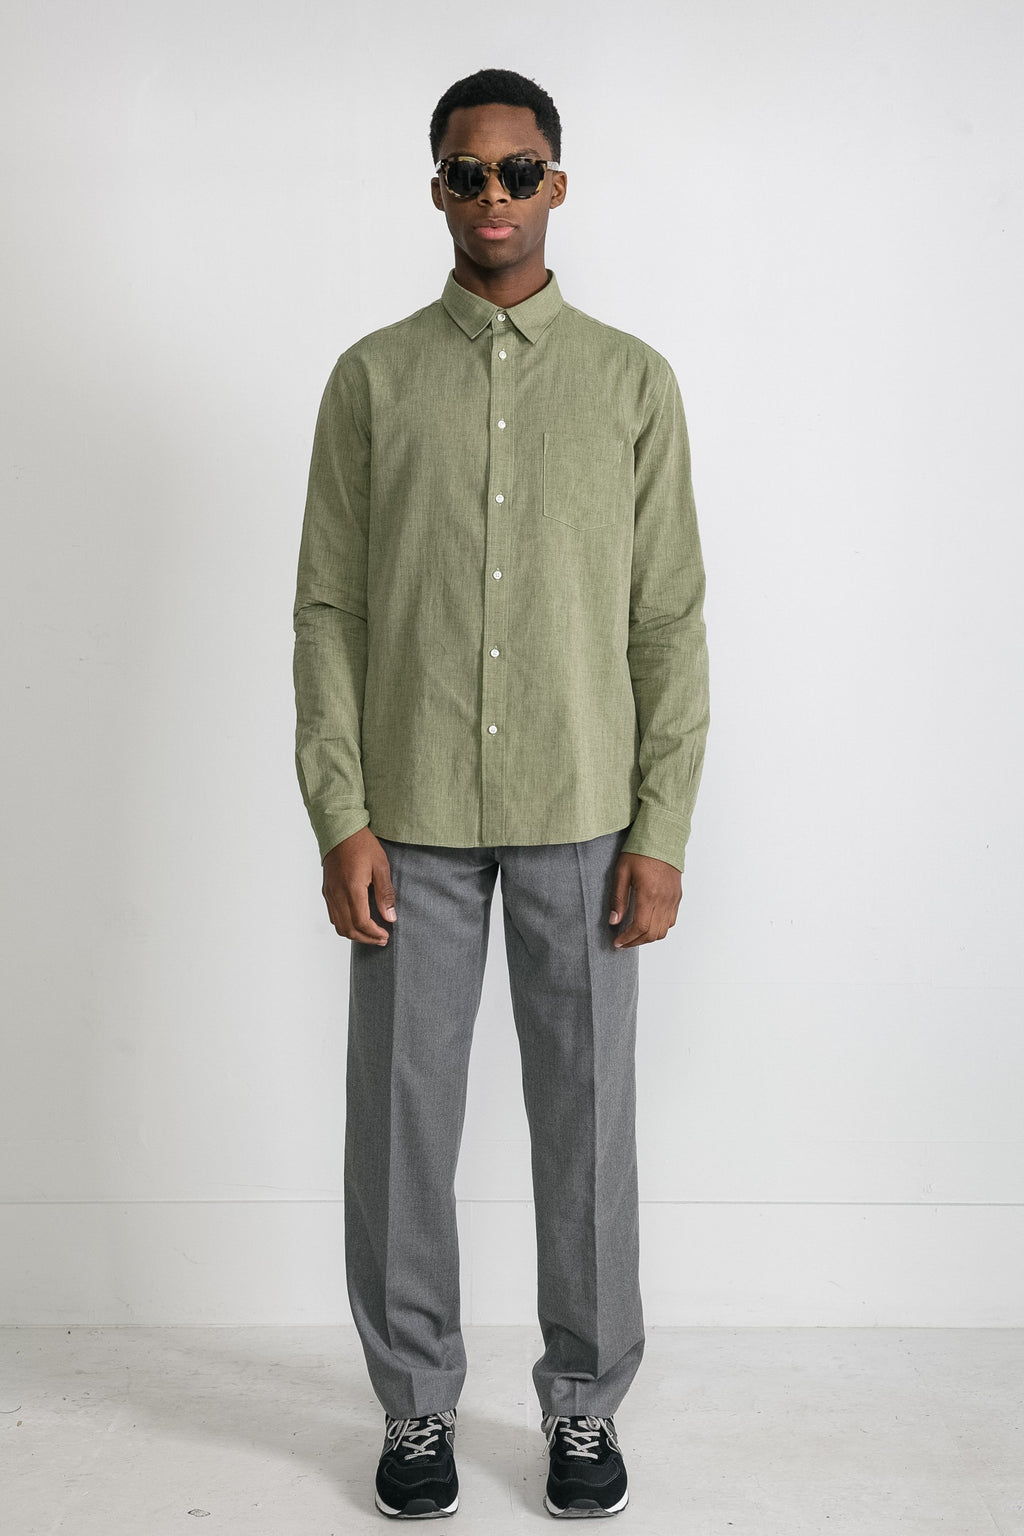 japanese-natural-chambray-in-green 02